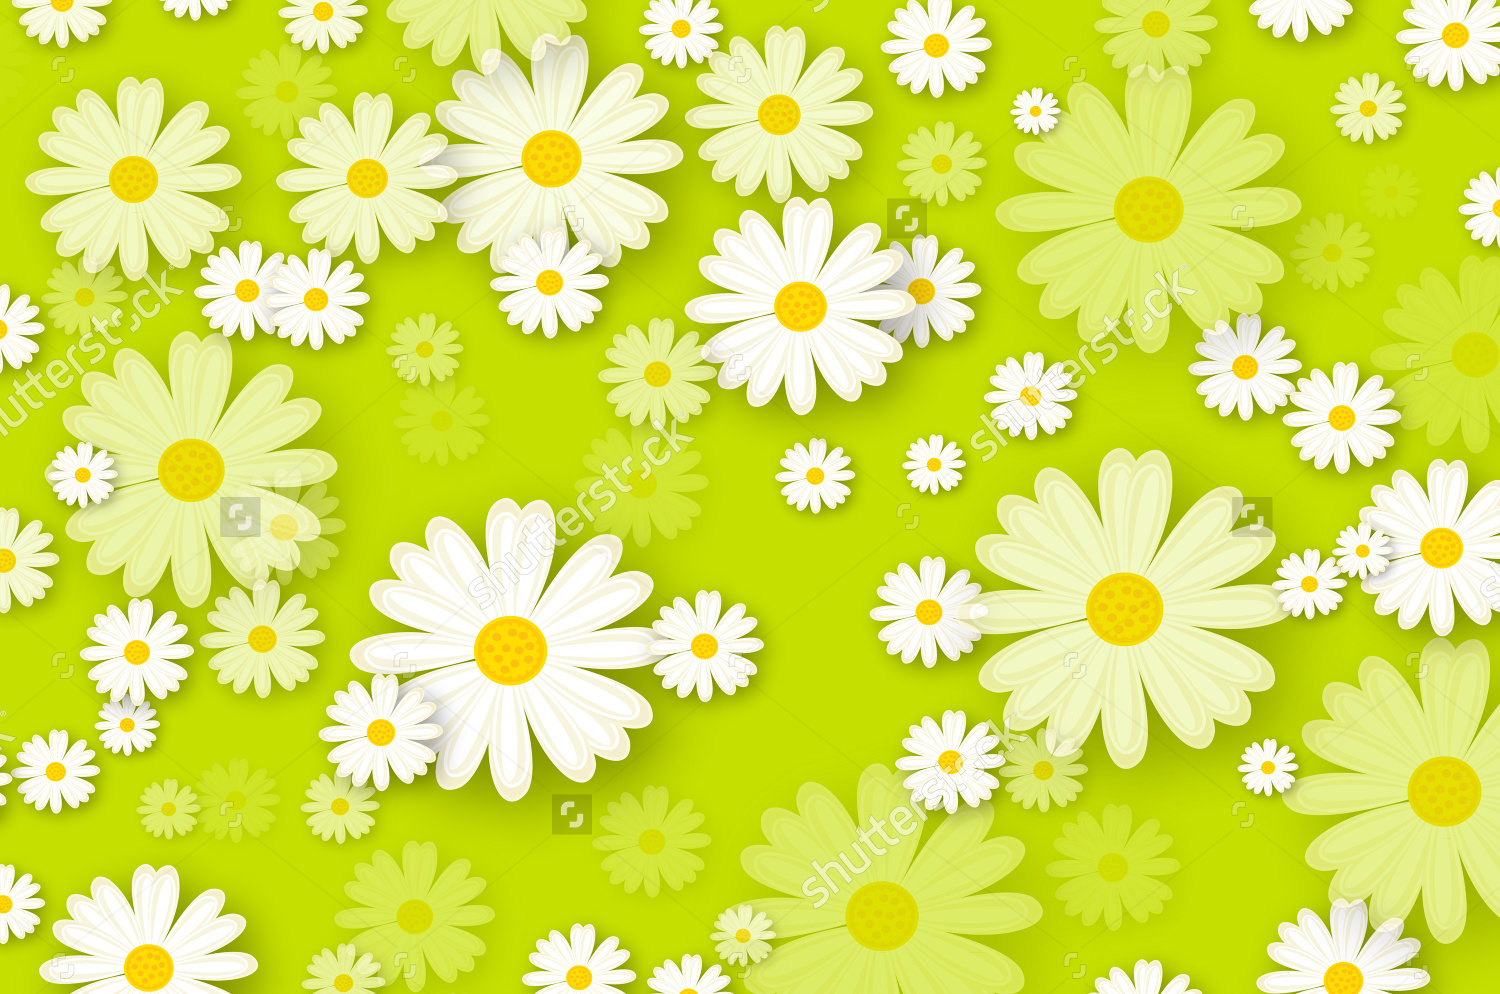 27 daisy backgrounds wallpapers images pictures